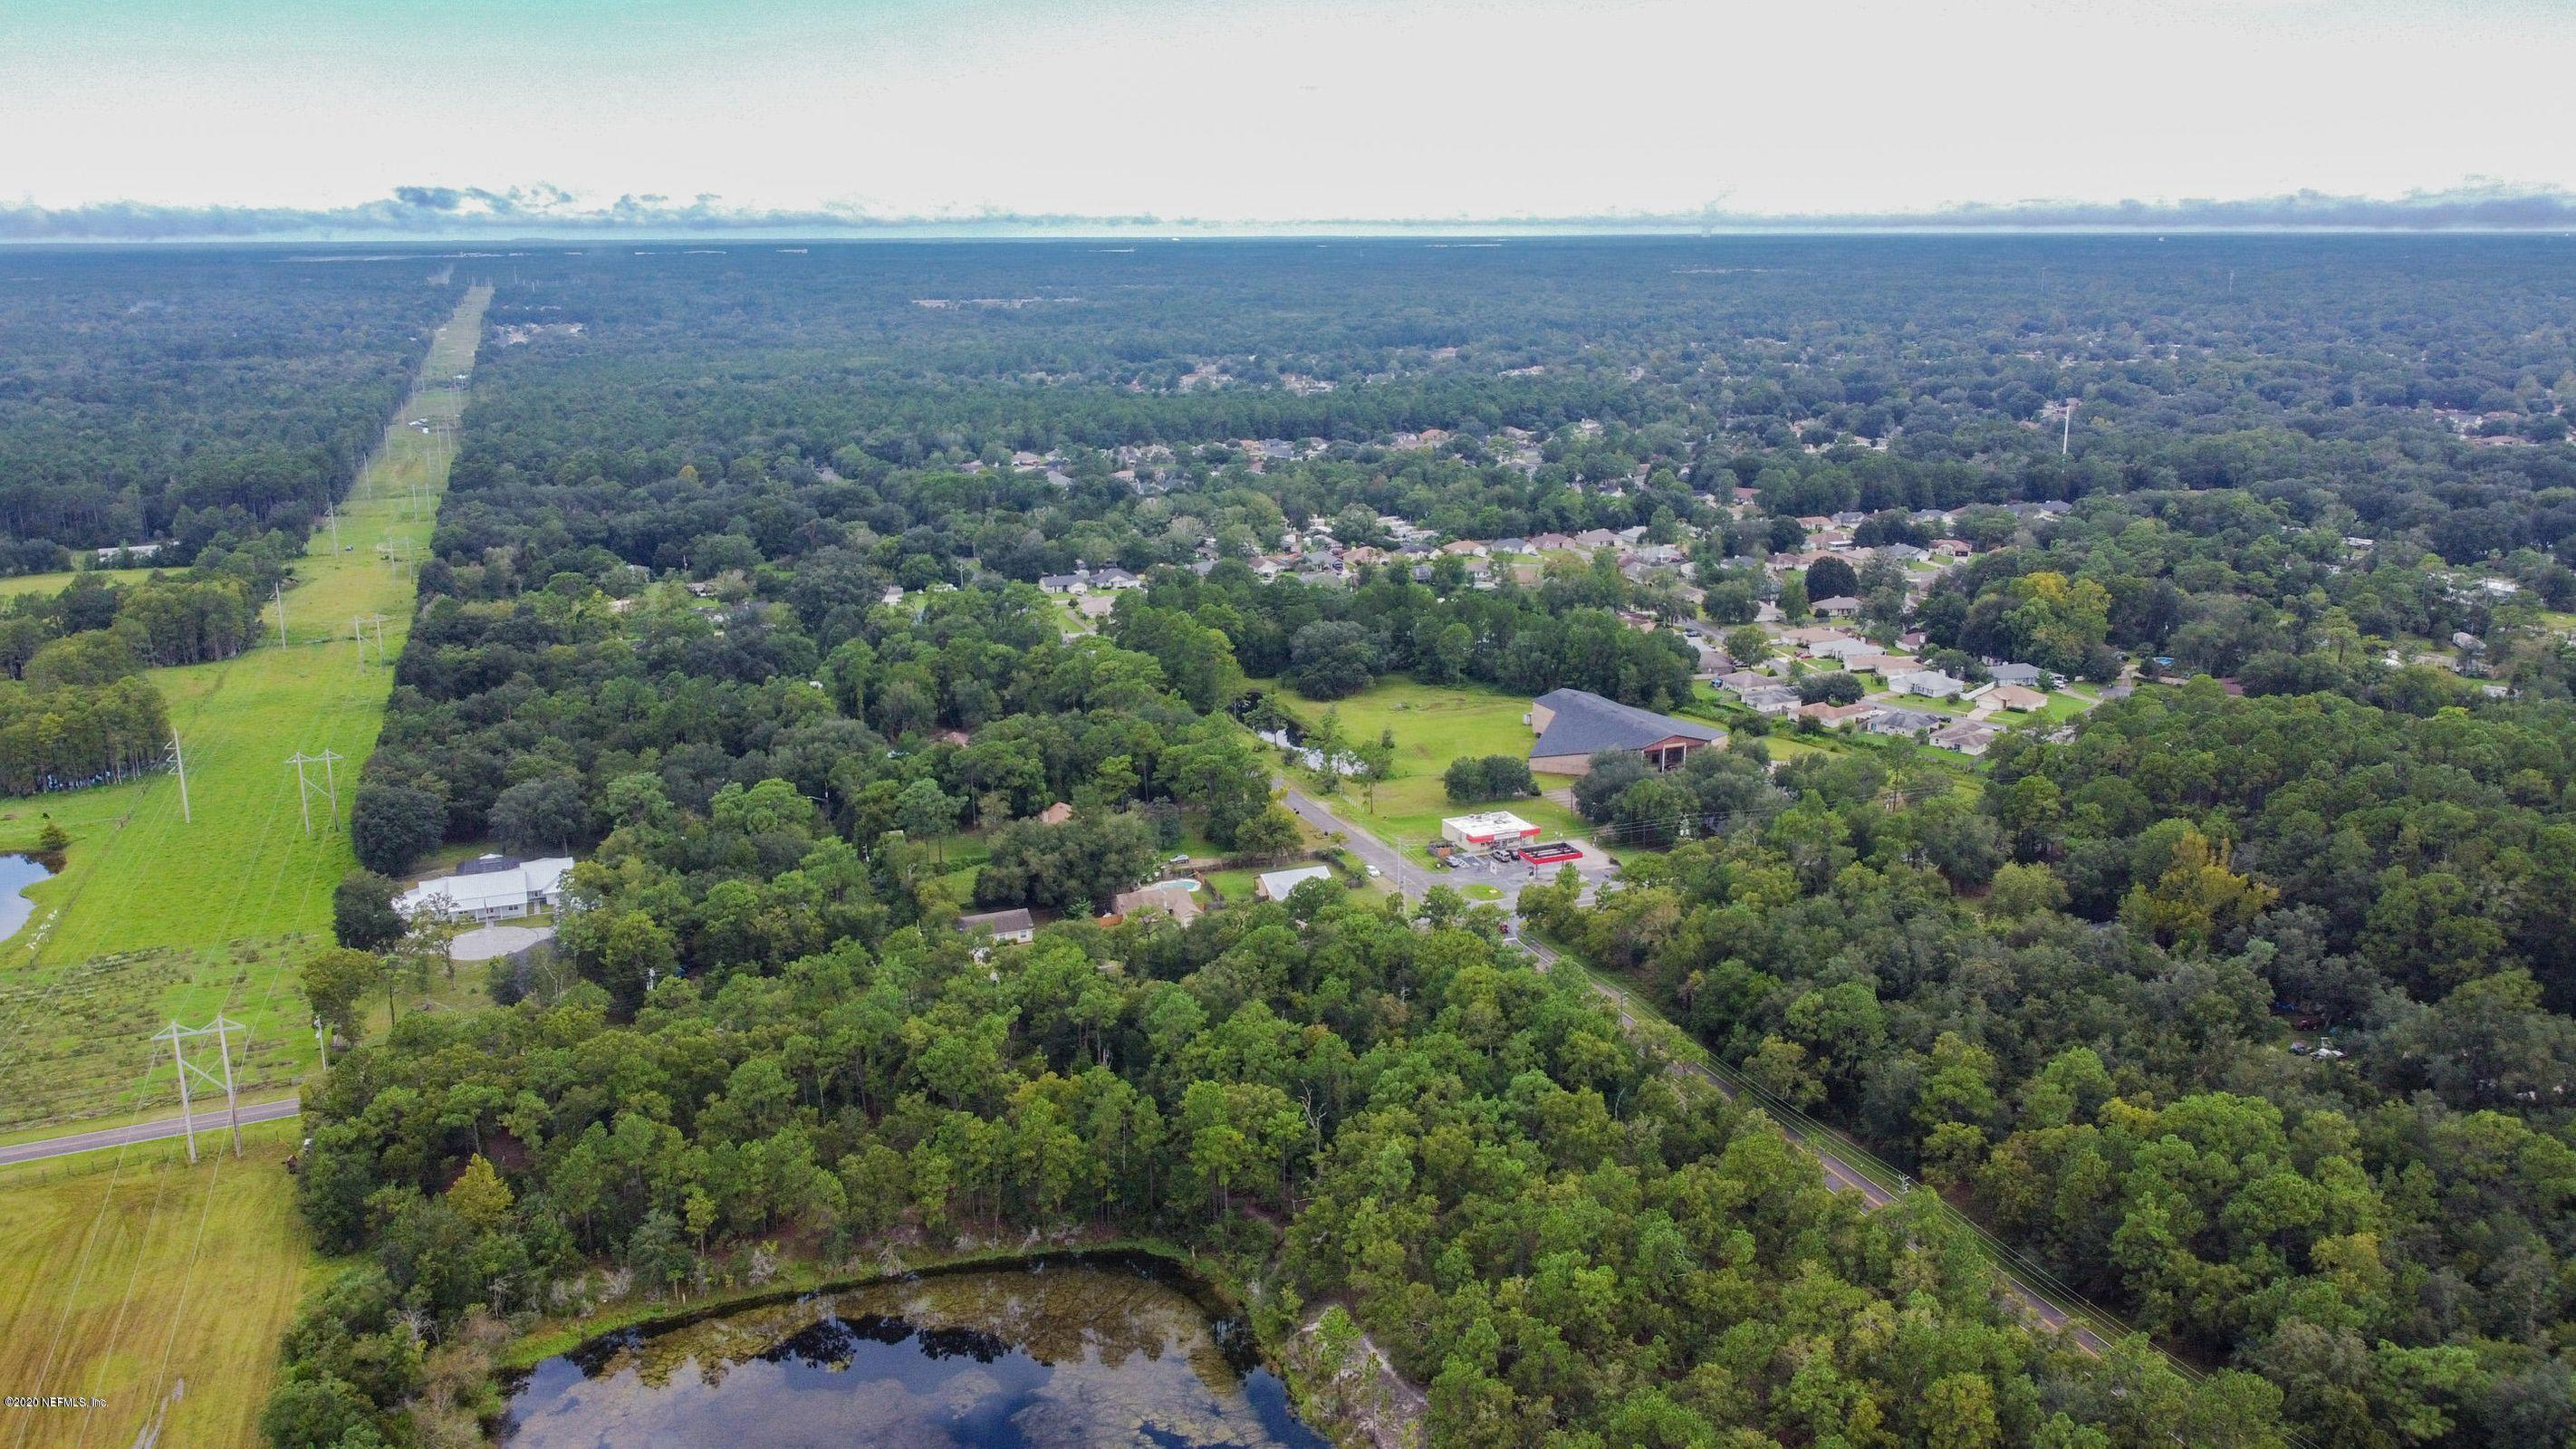 000 RICKER, JACKSONVILLE, FLORIDA 32244, ,Vacant land,For sale,RICKER,1081714